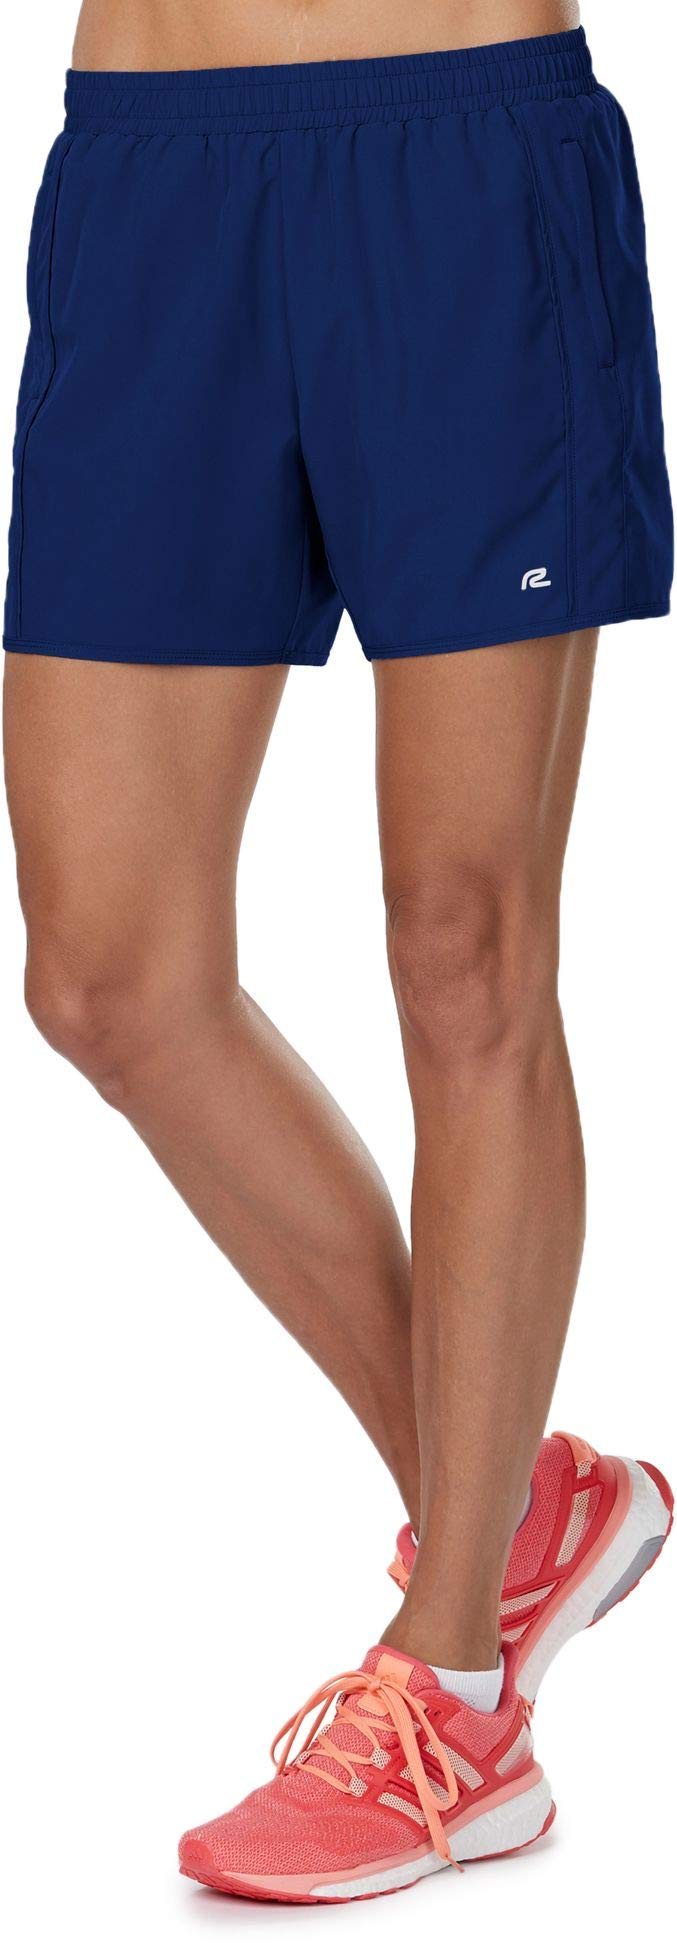 R-Gear Women's 5-Inch Running Workout Shorts with Zipper Pockets and Brief Liner for Sports, Gym, Casual   High Five